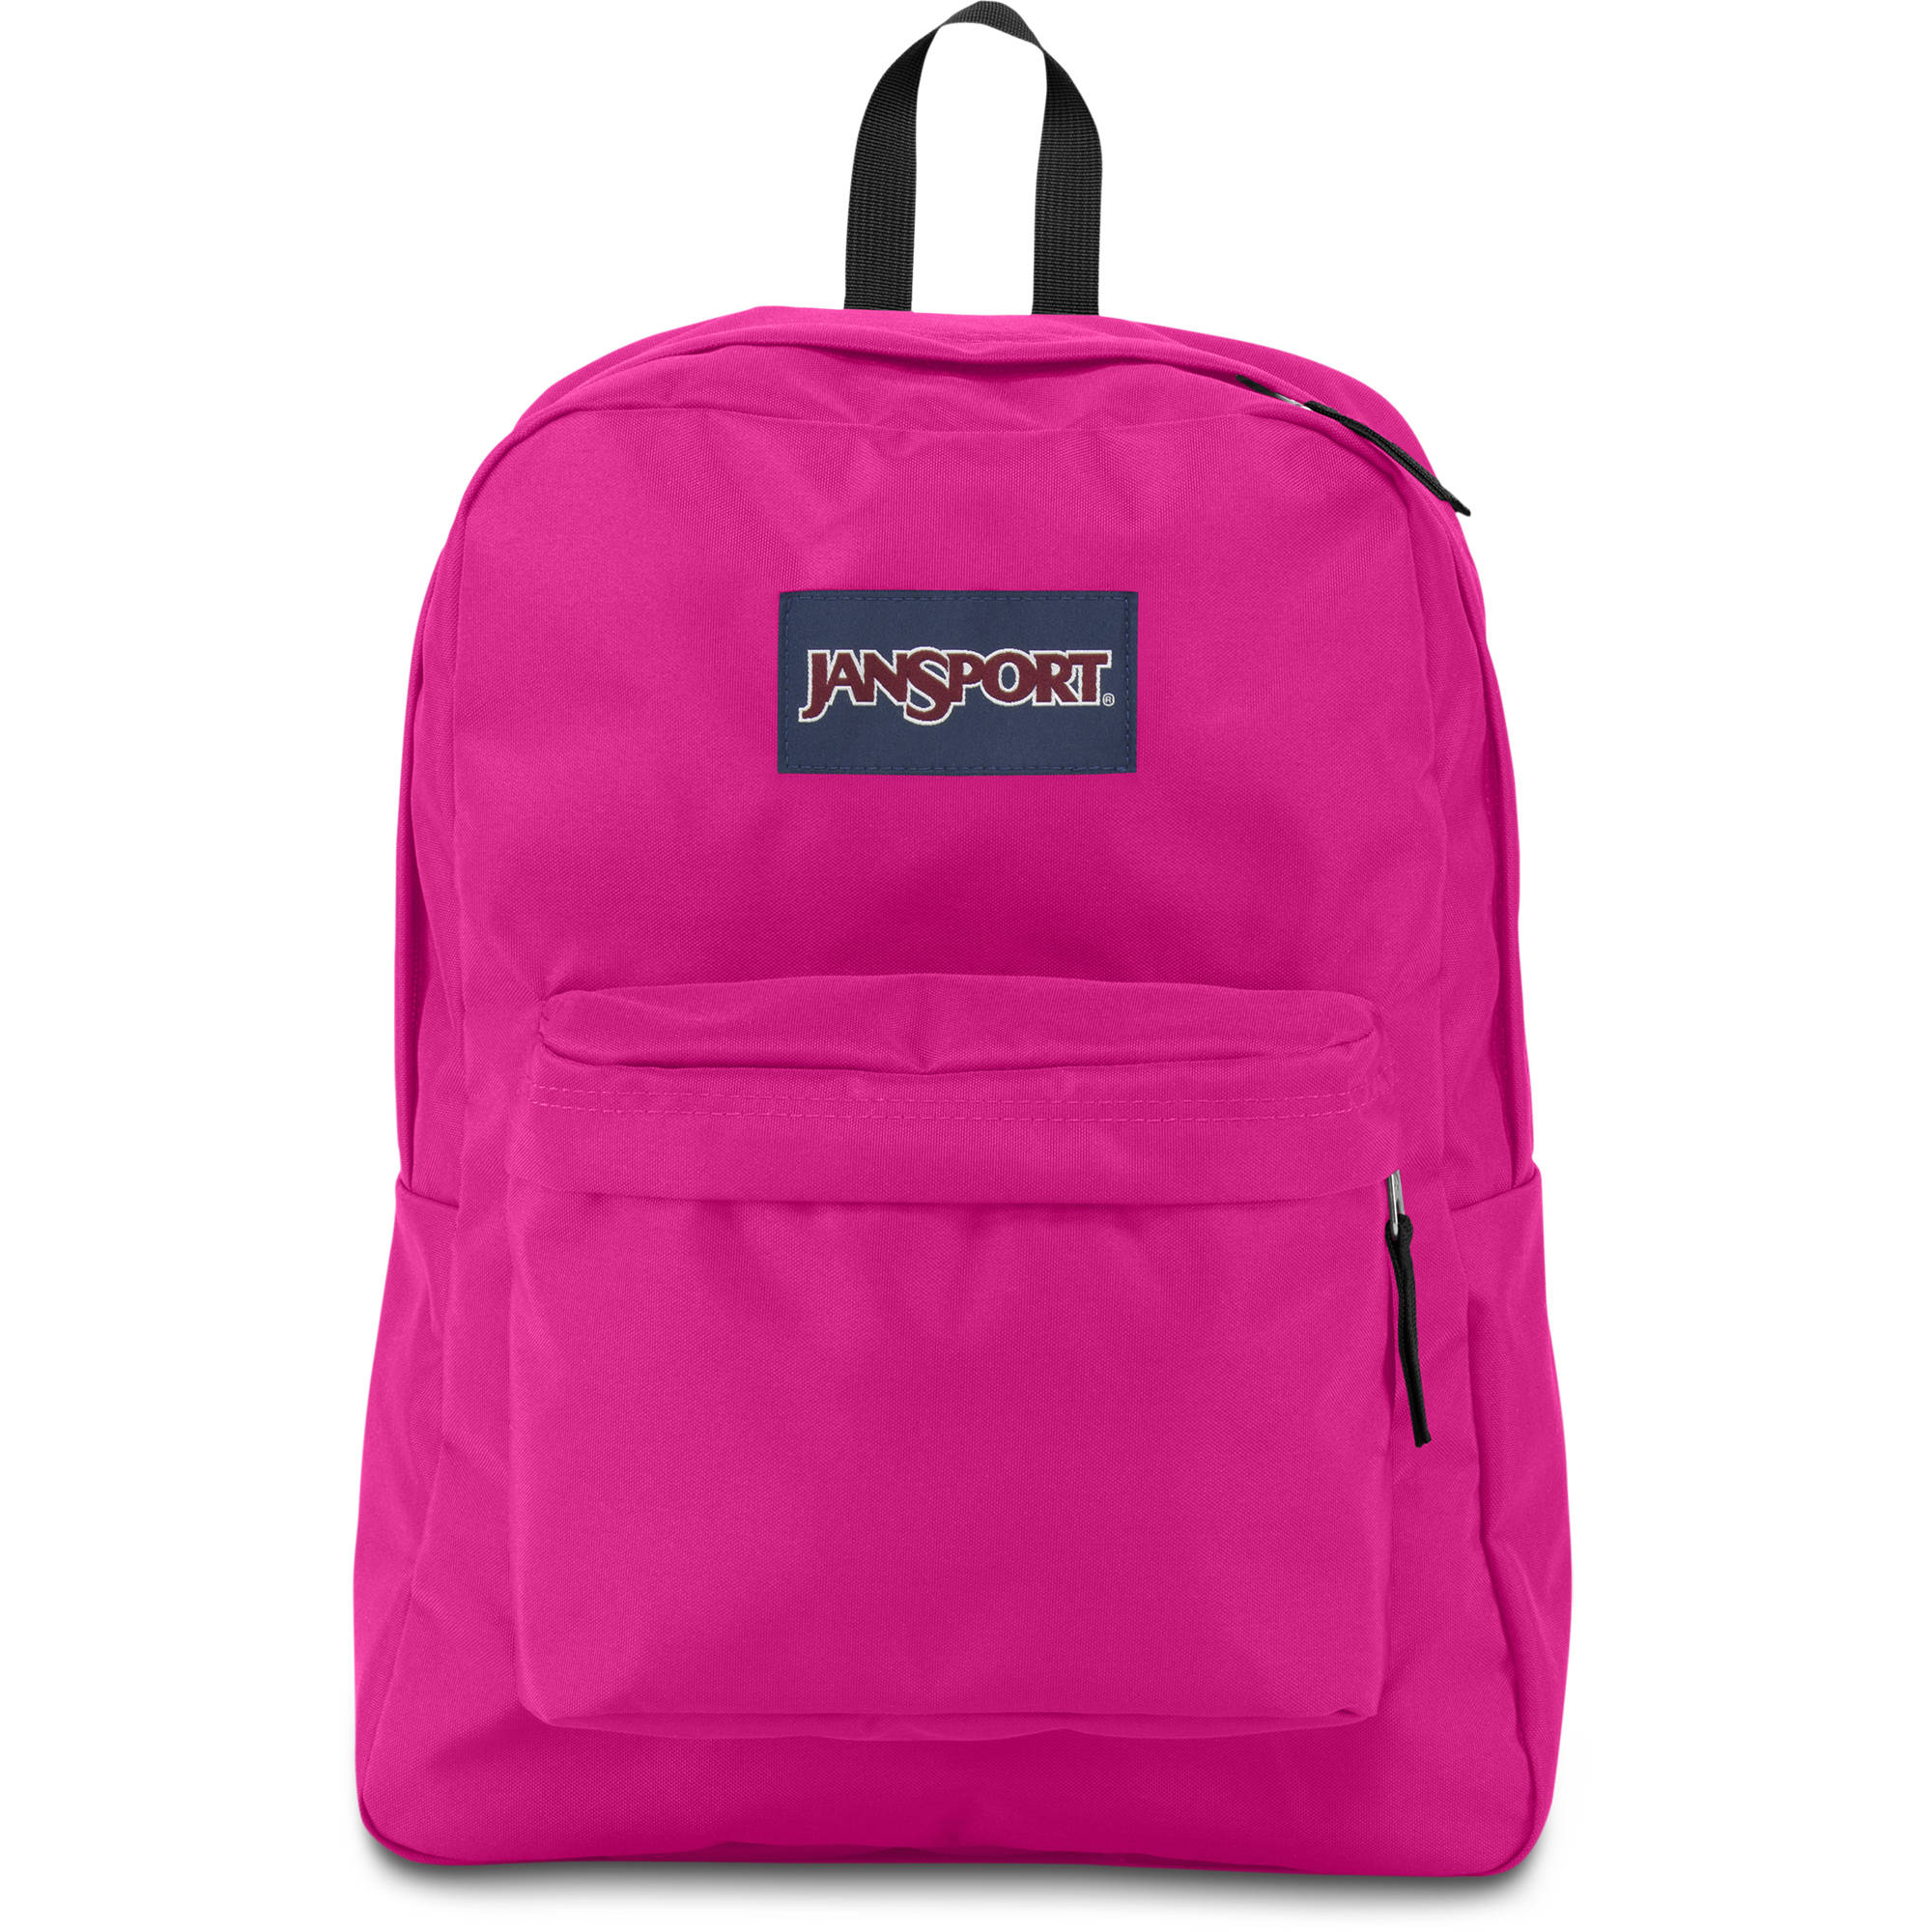 Where Can You Buy Jansport Backpacks nfBD5EnG